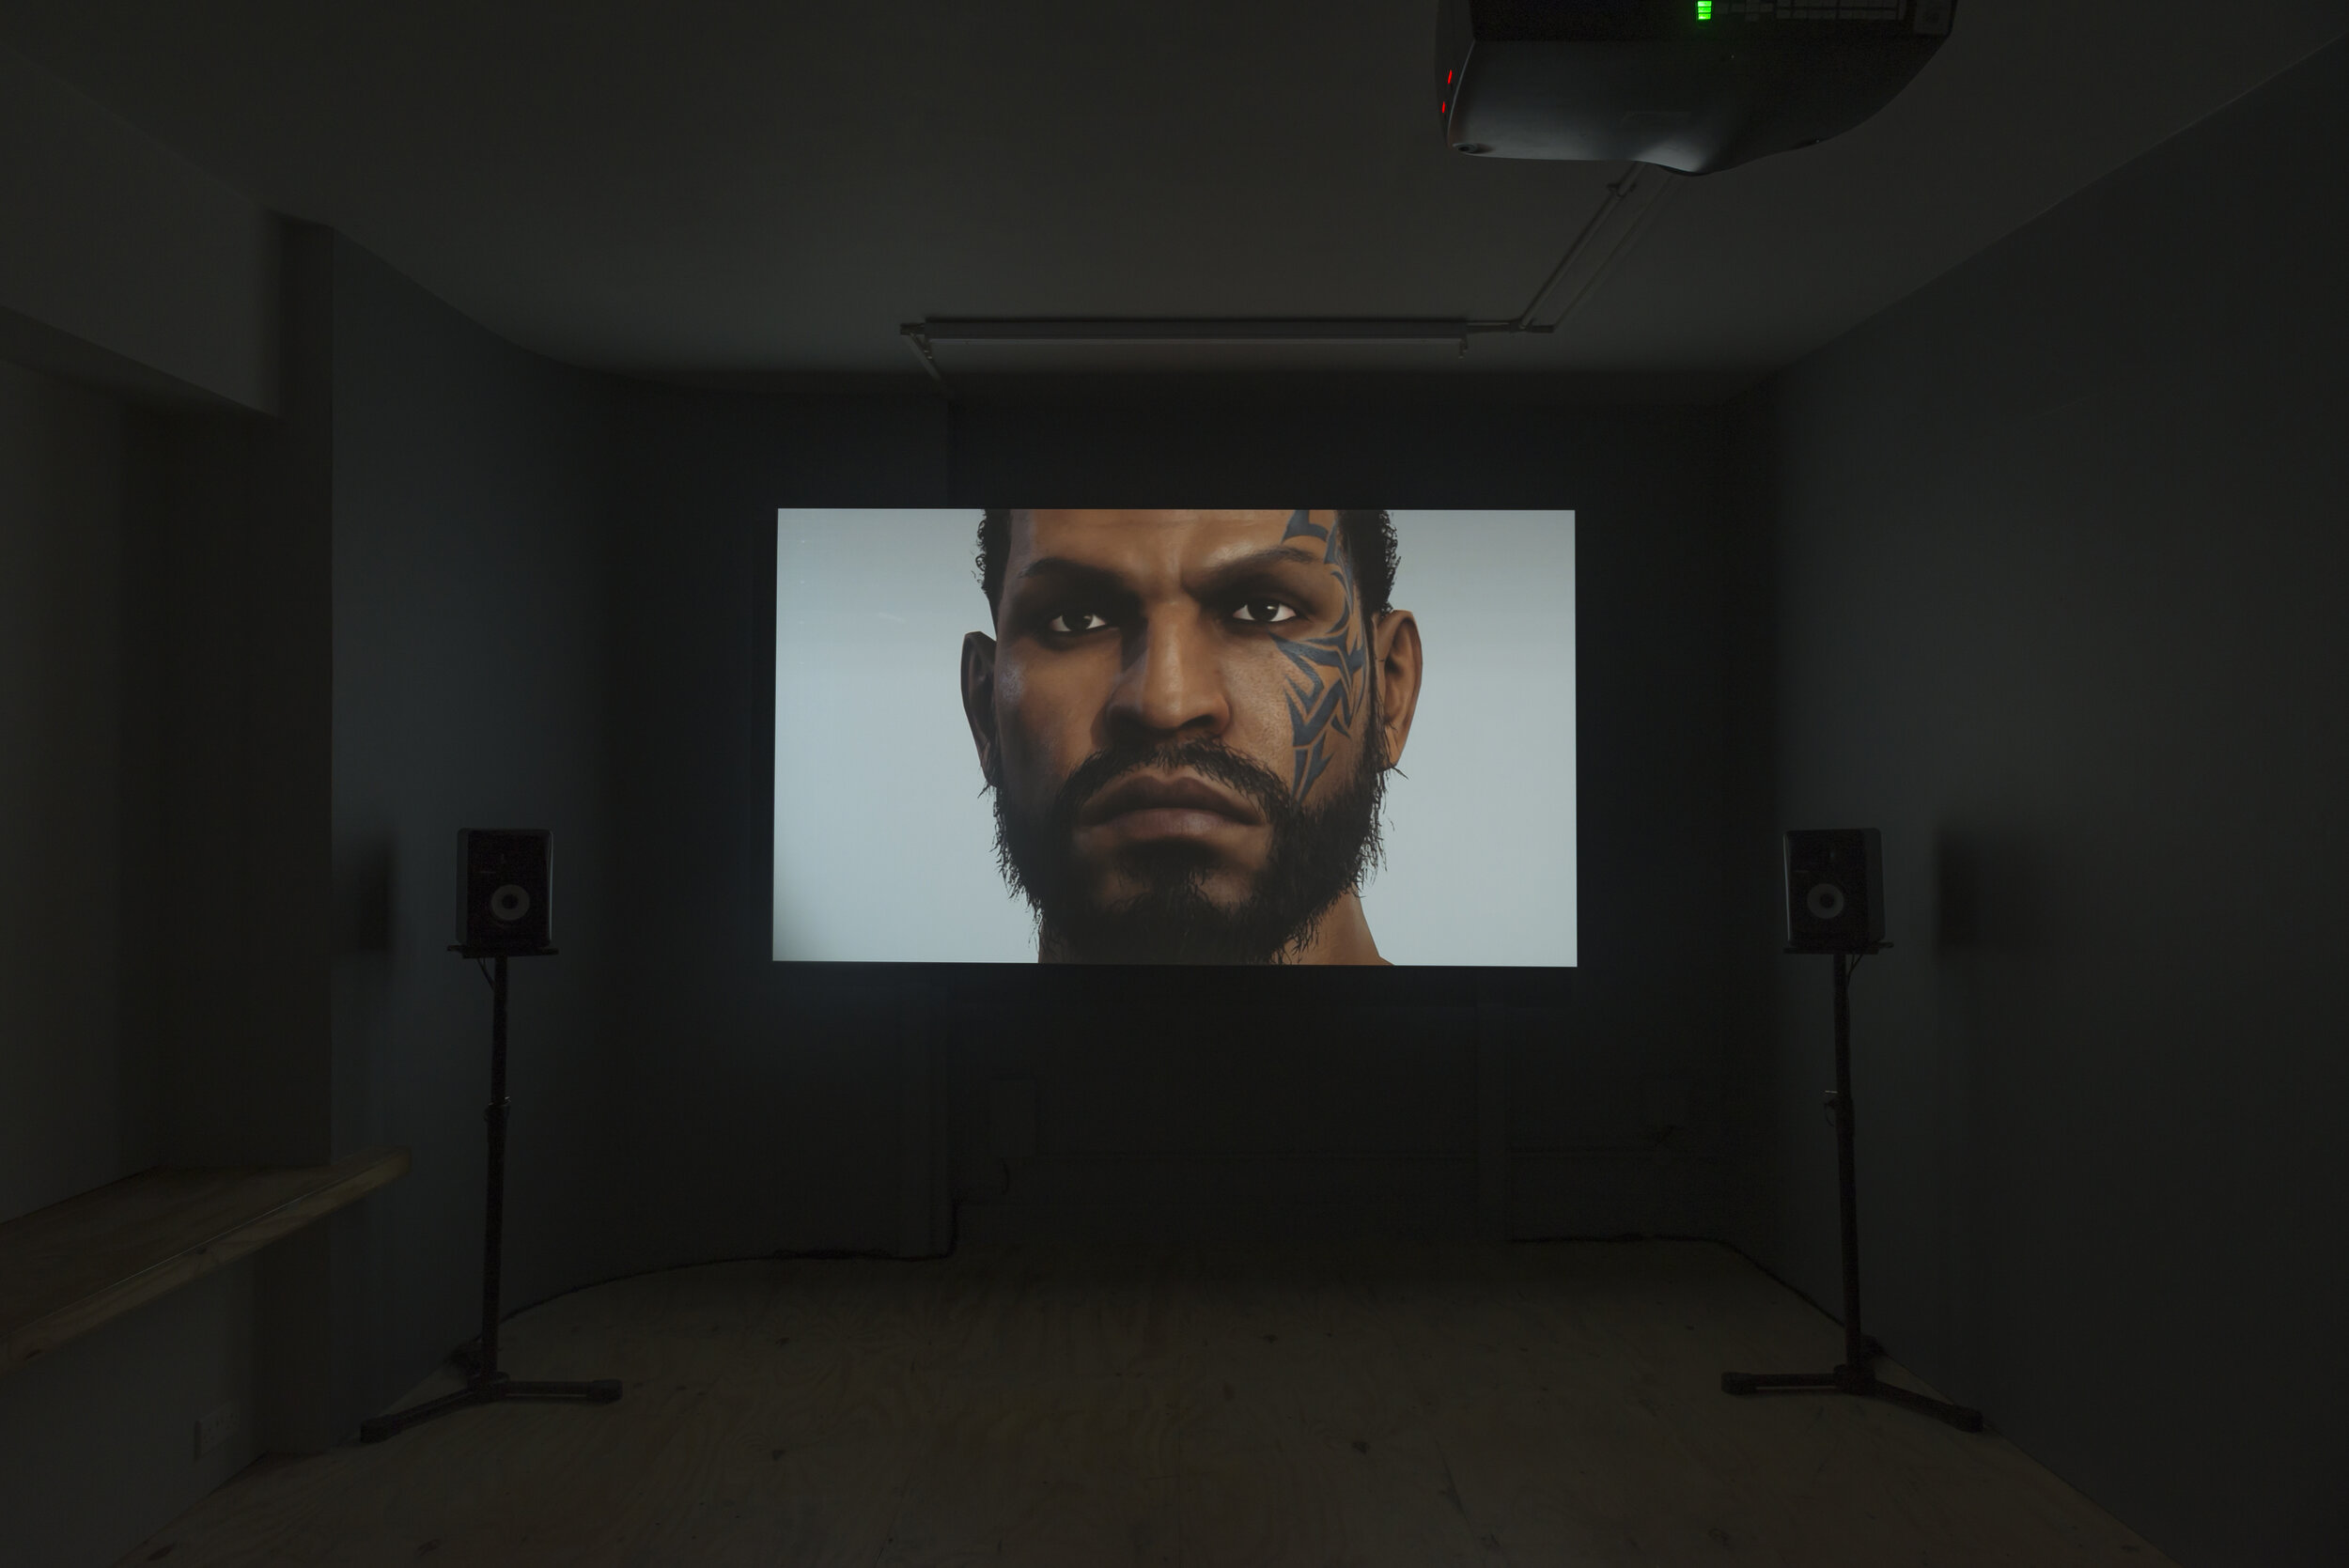 Press image 4 Larry Achiampong & David Blandy-Genetic Automata_2019_ installation view.jpg